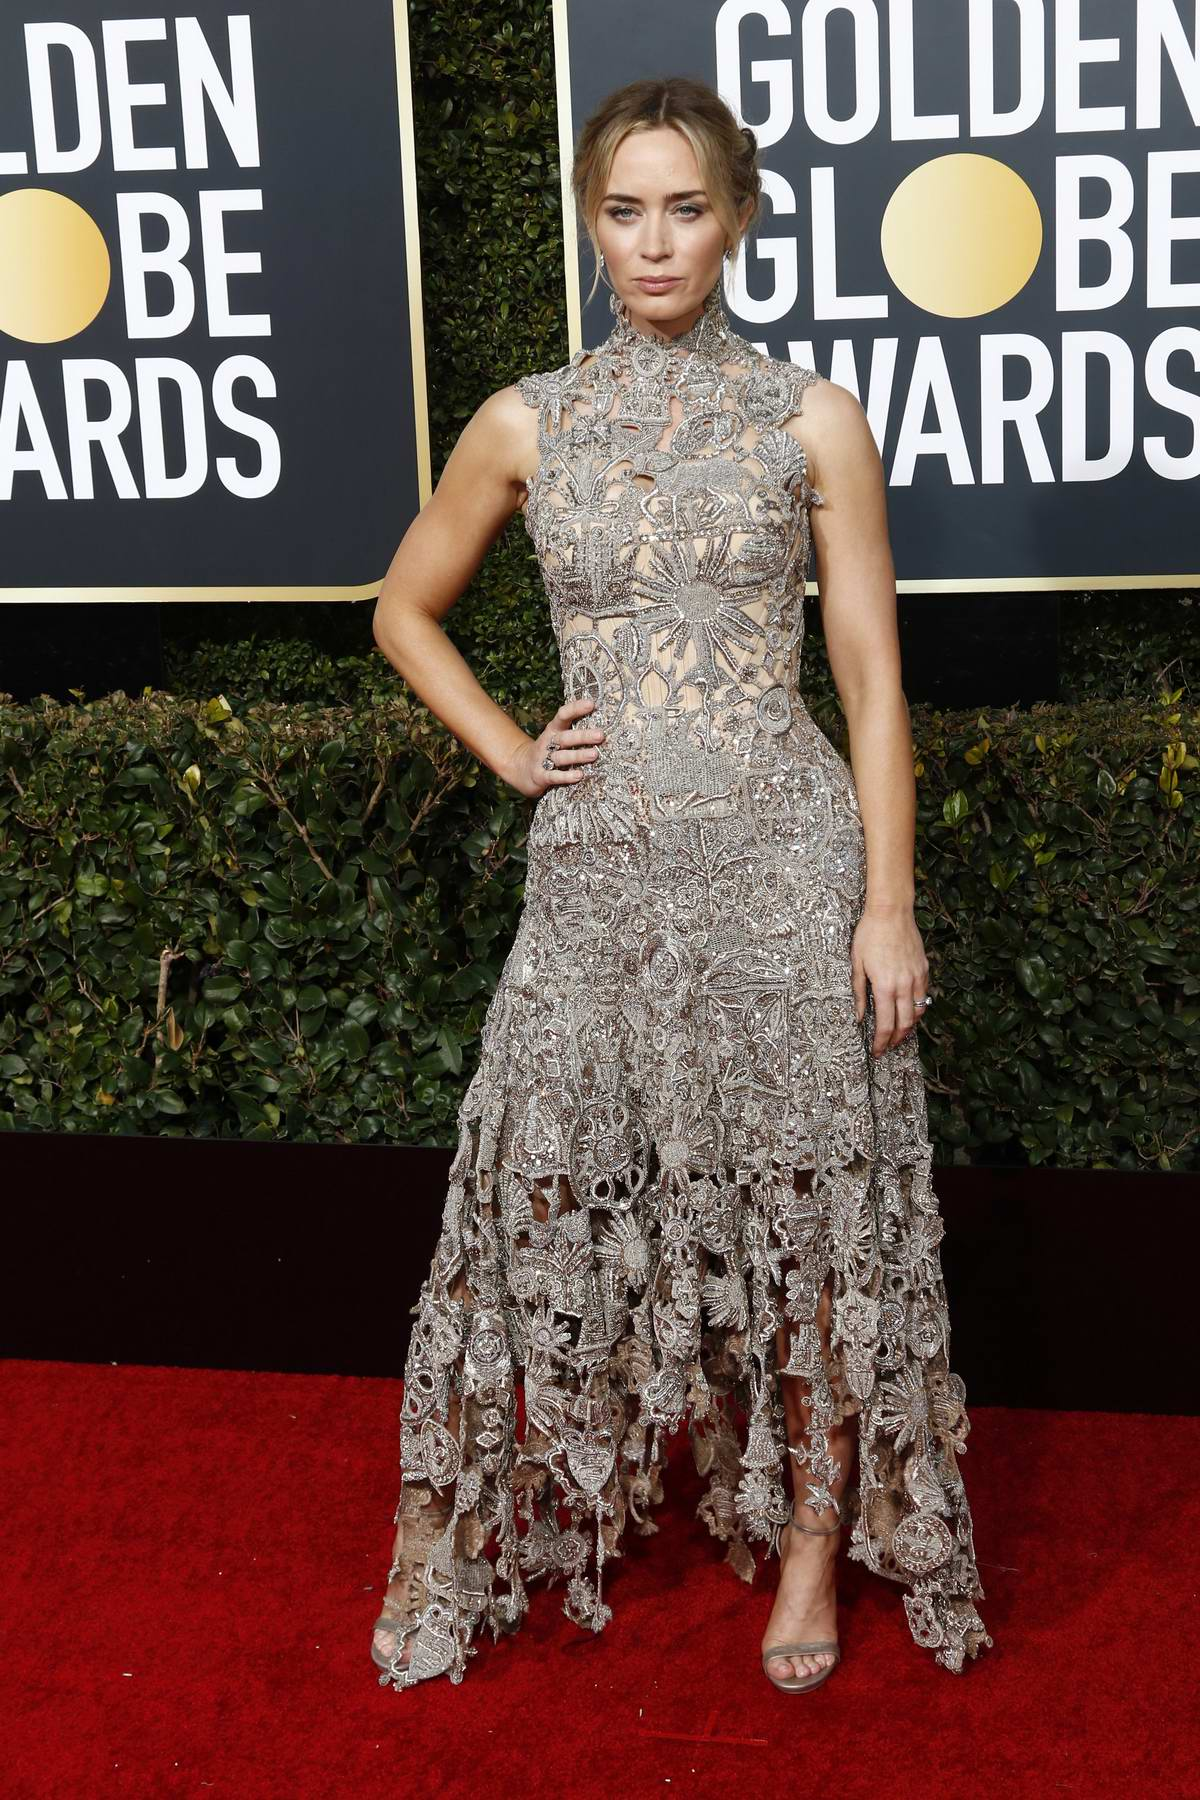 Emily Blunt attends the 76th Annual Golden Globe Awards held at The Beverly Hilton Hotel in Los Angeles, California